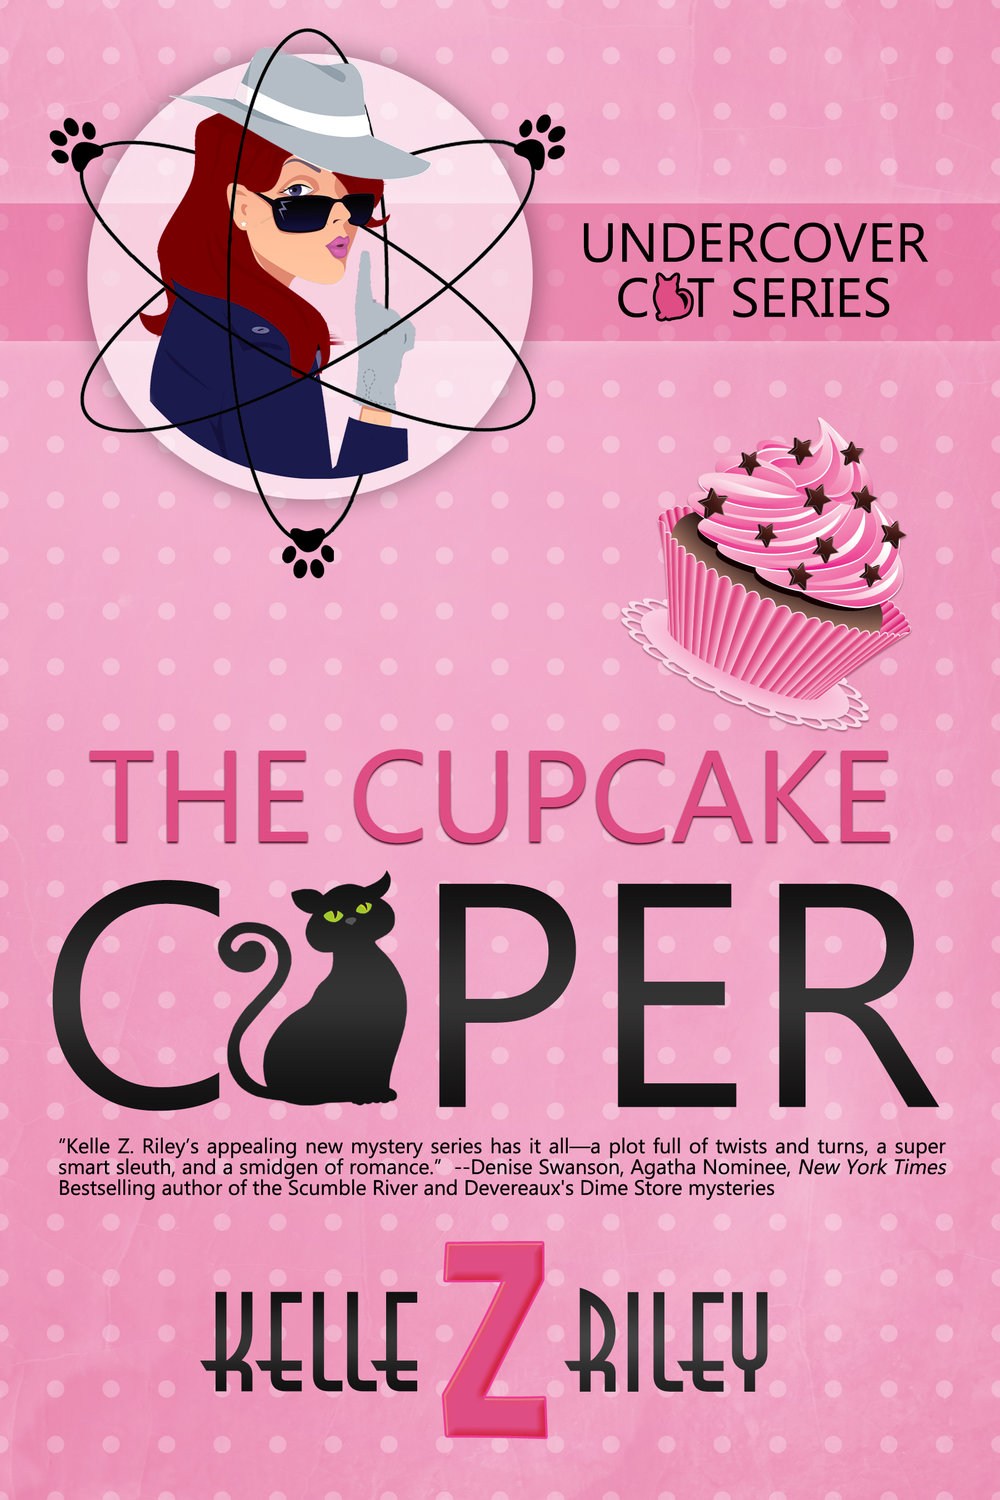 The_Cupcake_Caper_1800x2700 Ebook cover.jpg